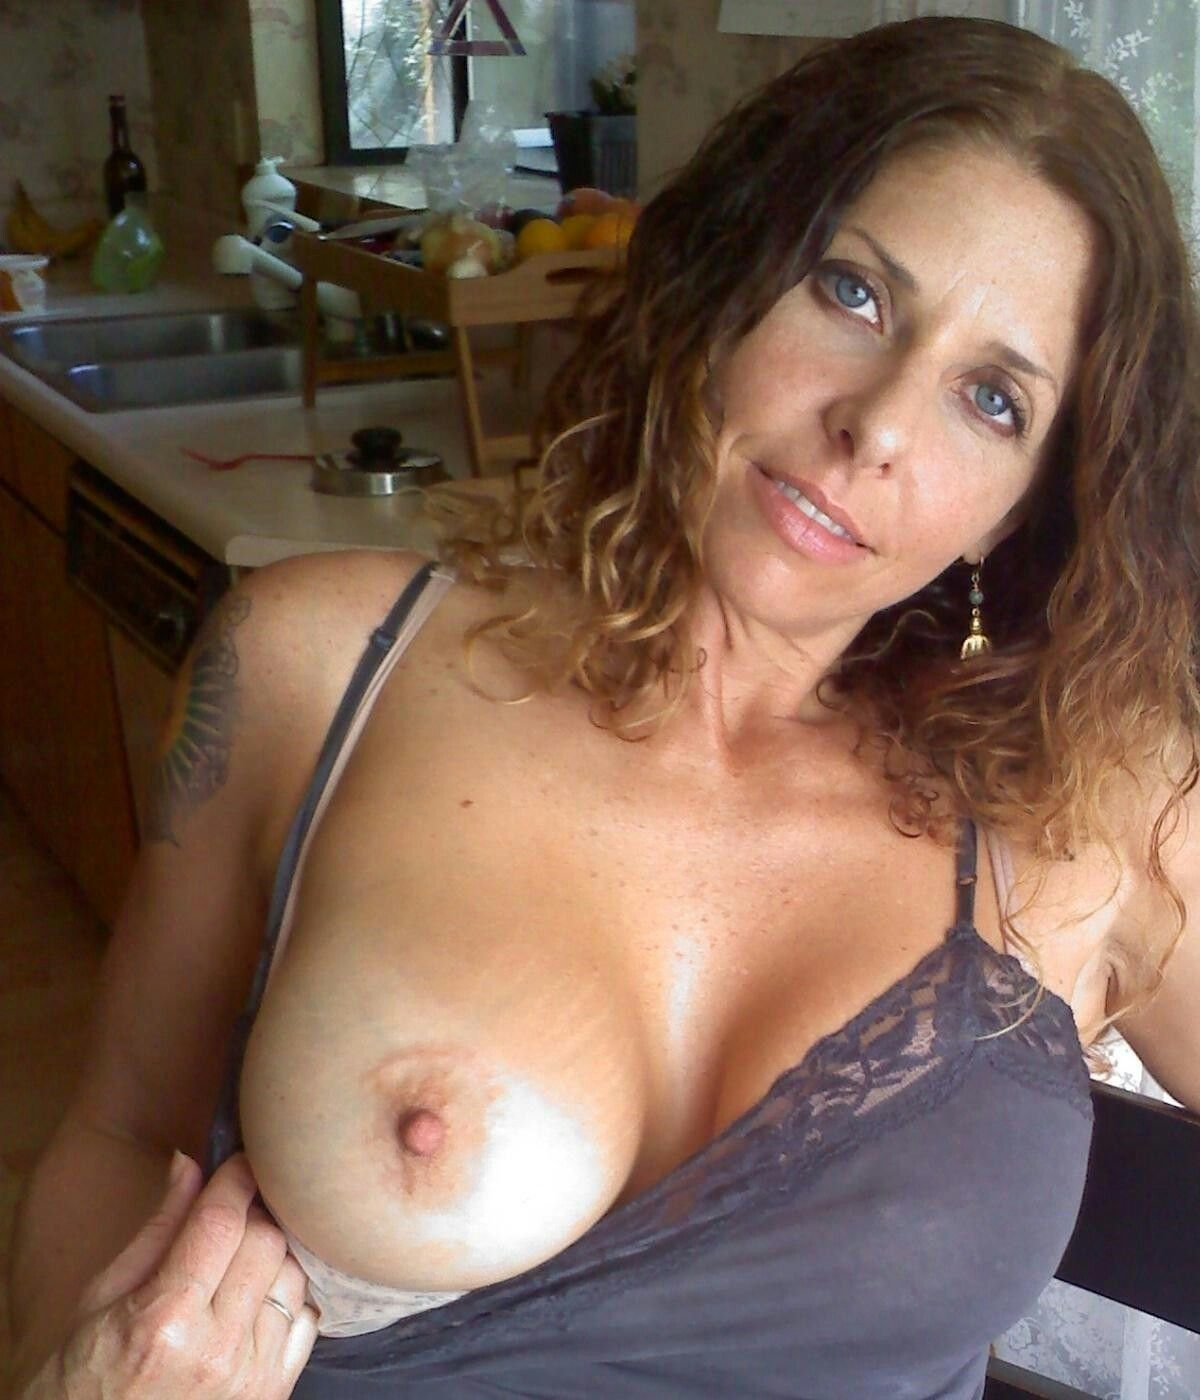 Ddd Mature Tits Good pinwes tenn on sexy mature | pinterest | boobs, woman and nude